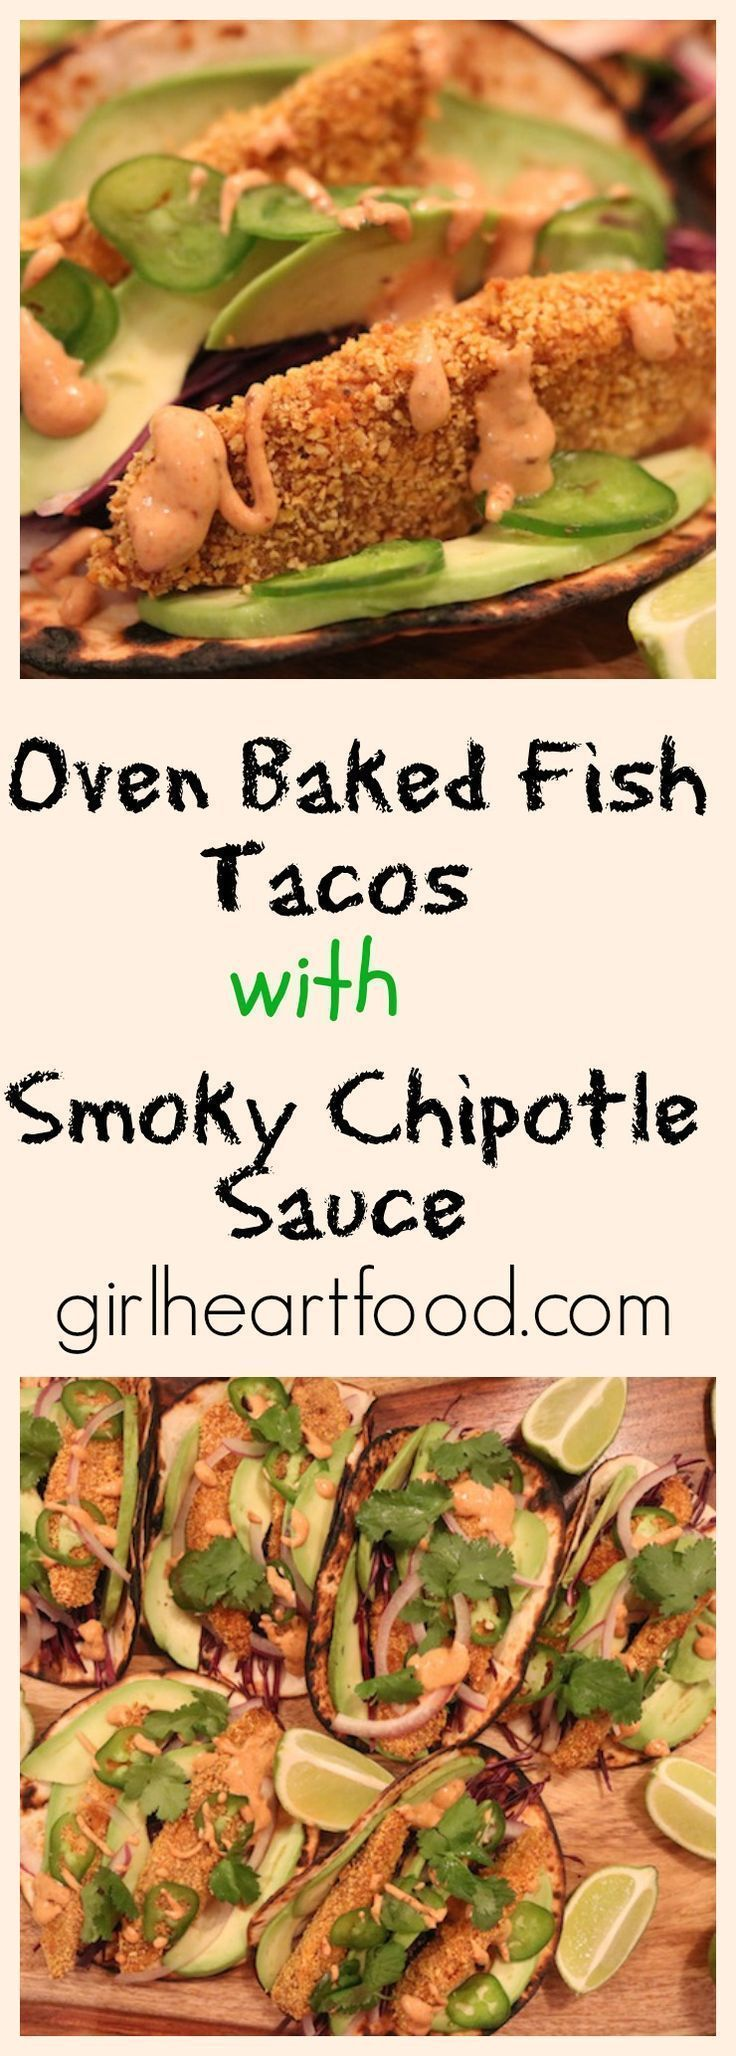 Easy oven baked fish tacos made in under 25 minutes! These are healthy and tasty! - girlheartfood.com